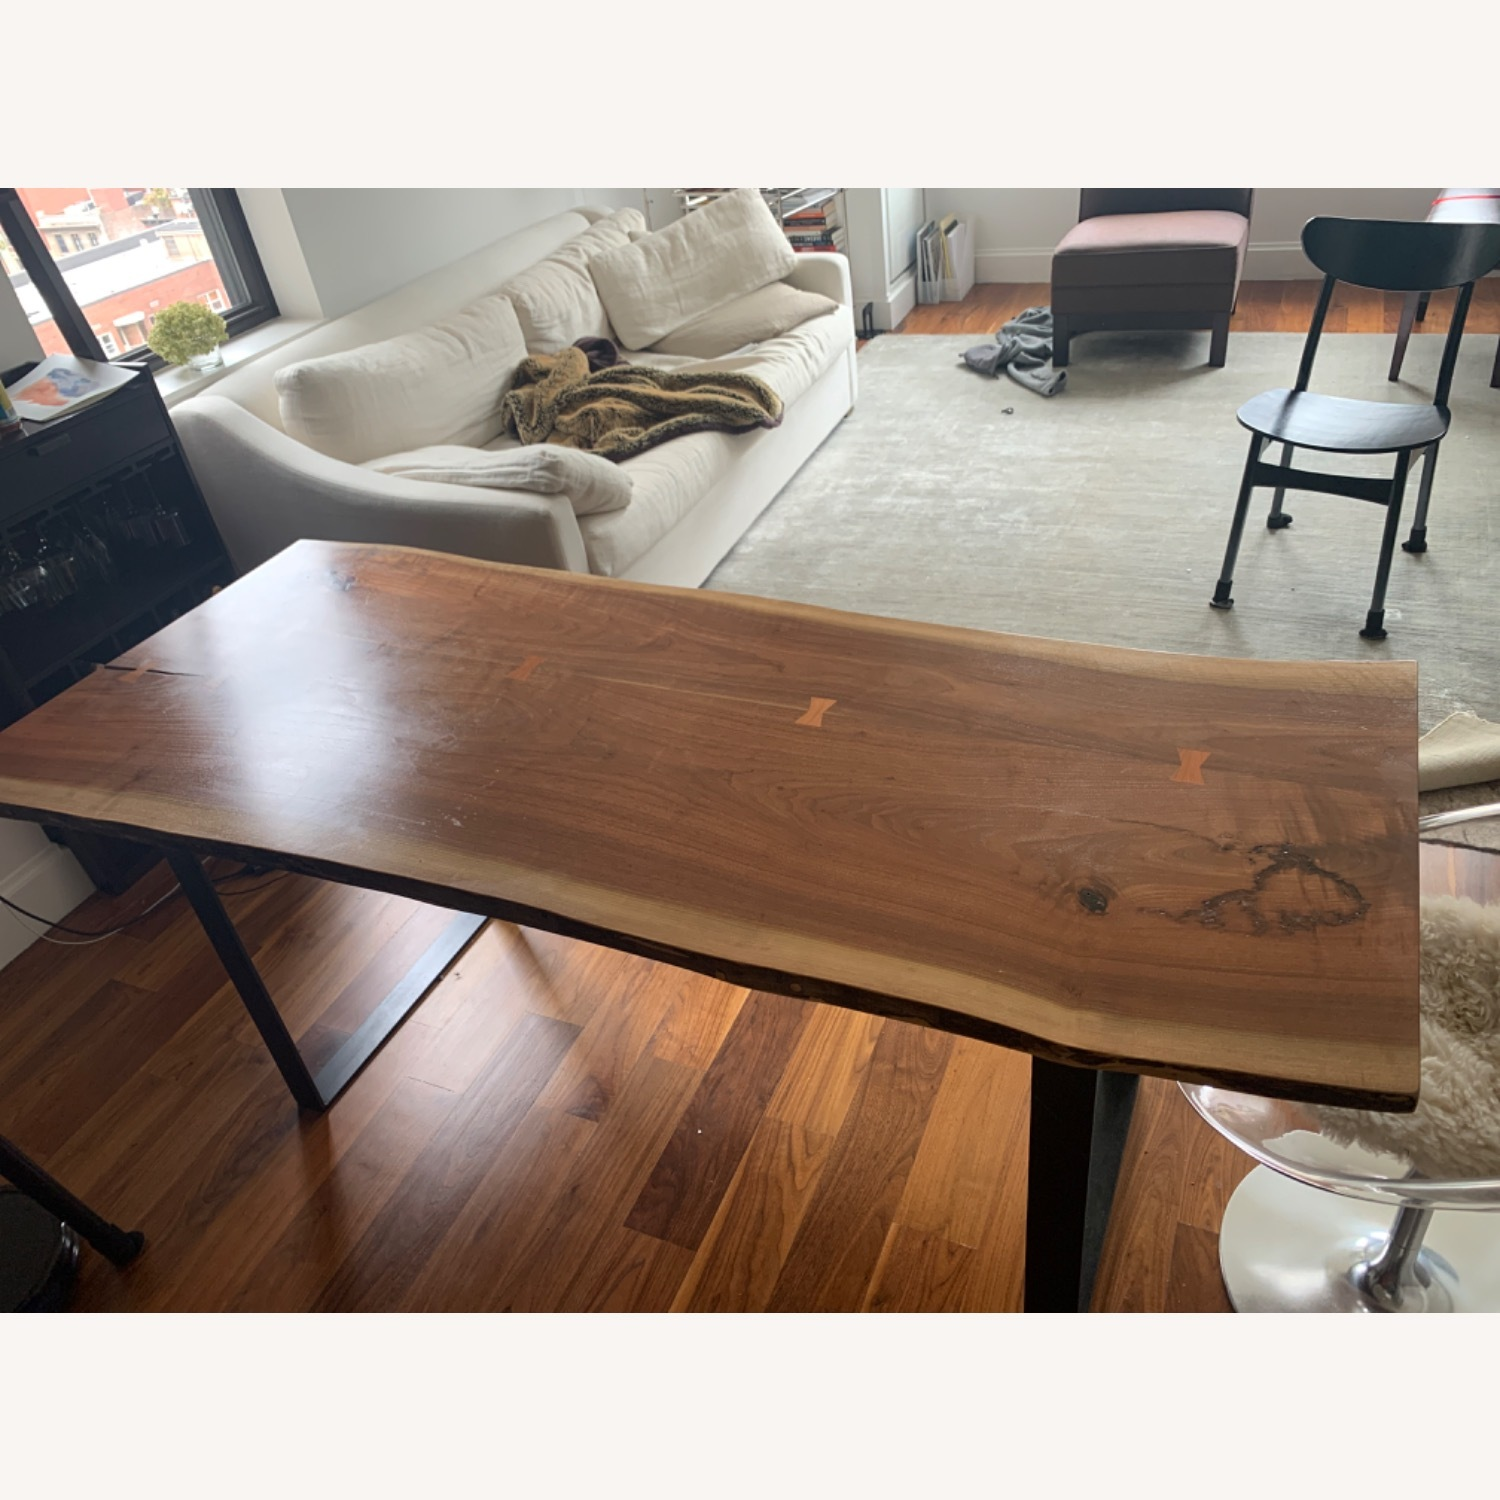 Room & Board Live Edge Acacia Wood Dining Table - image-2